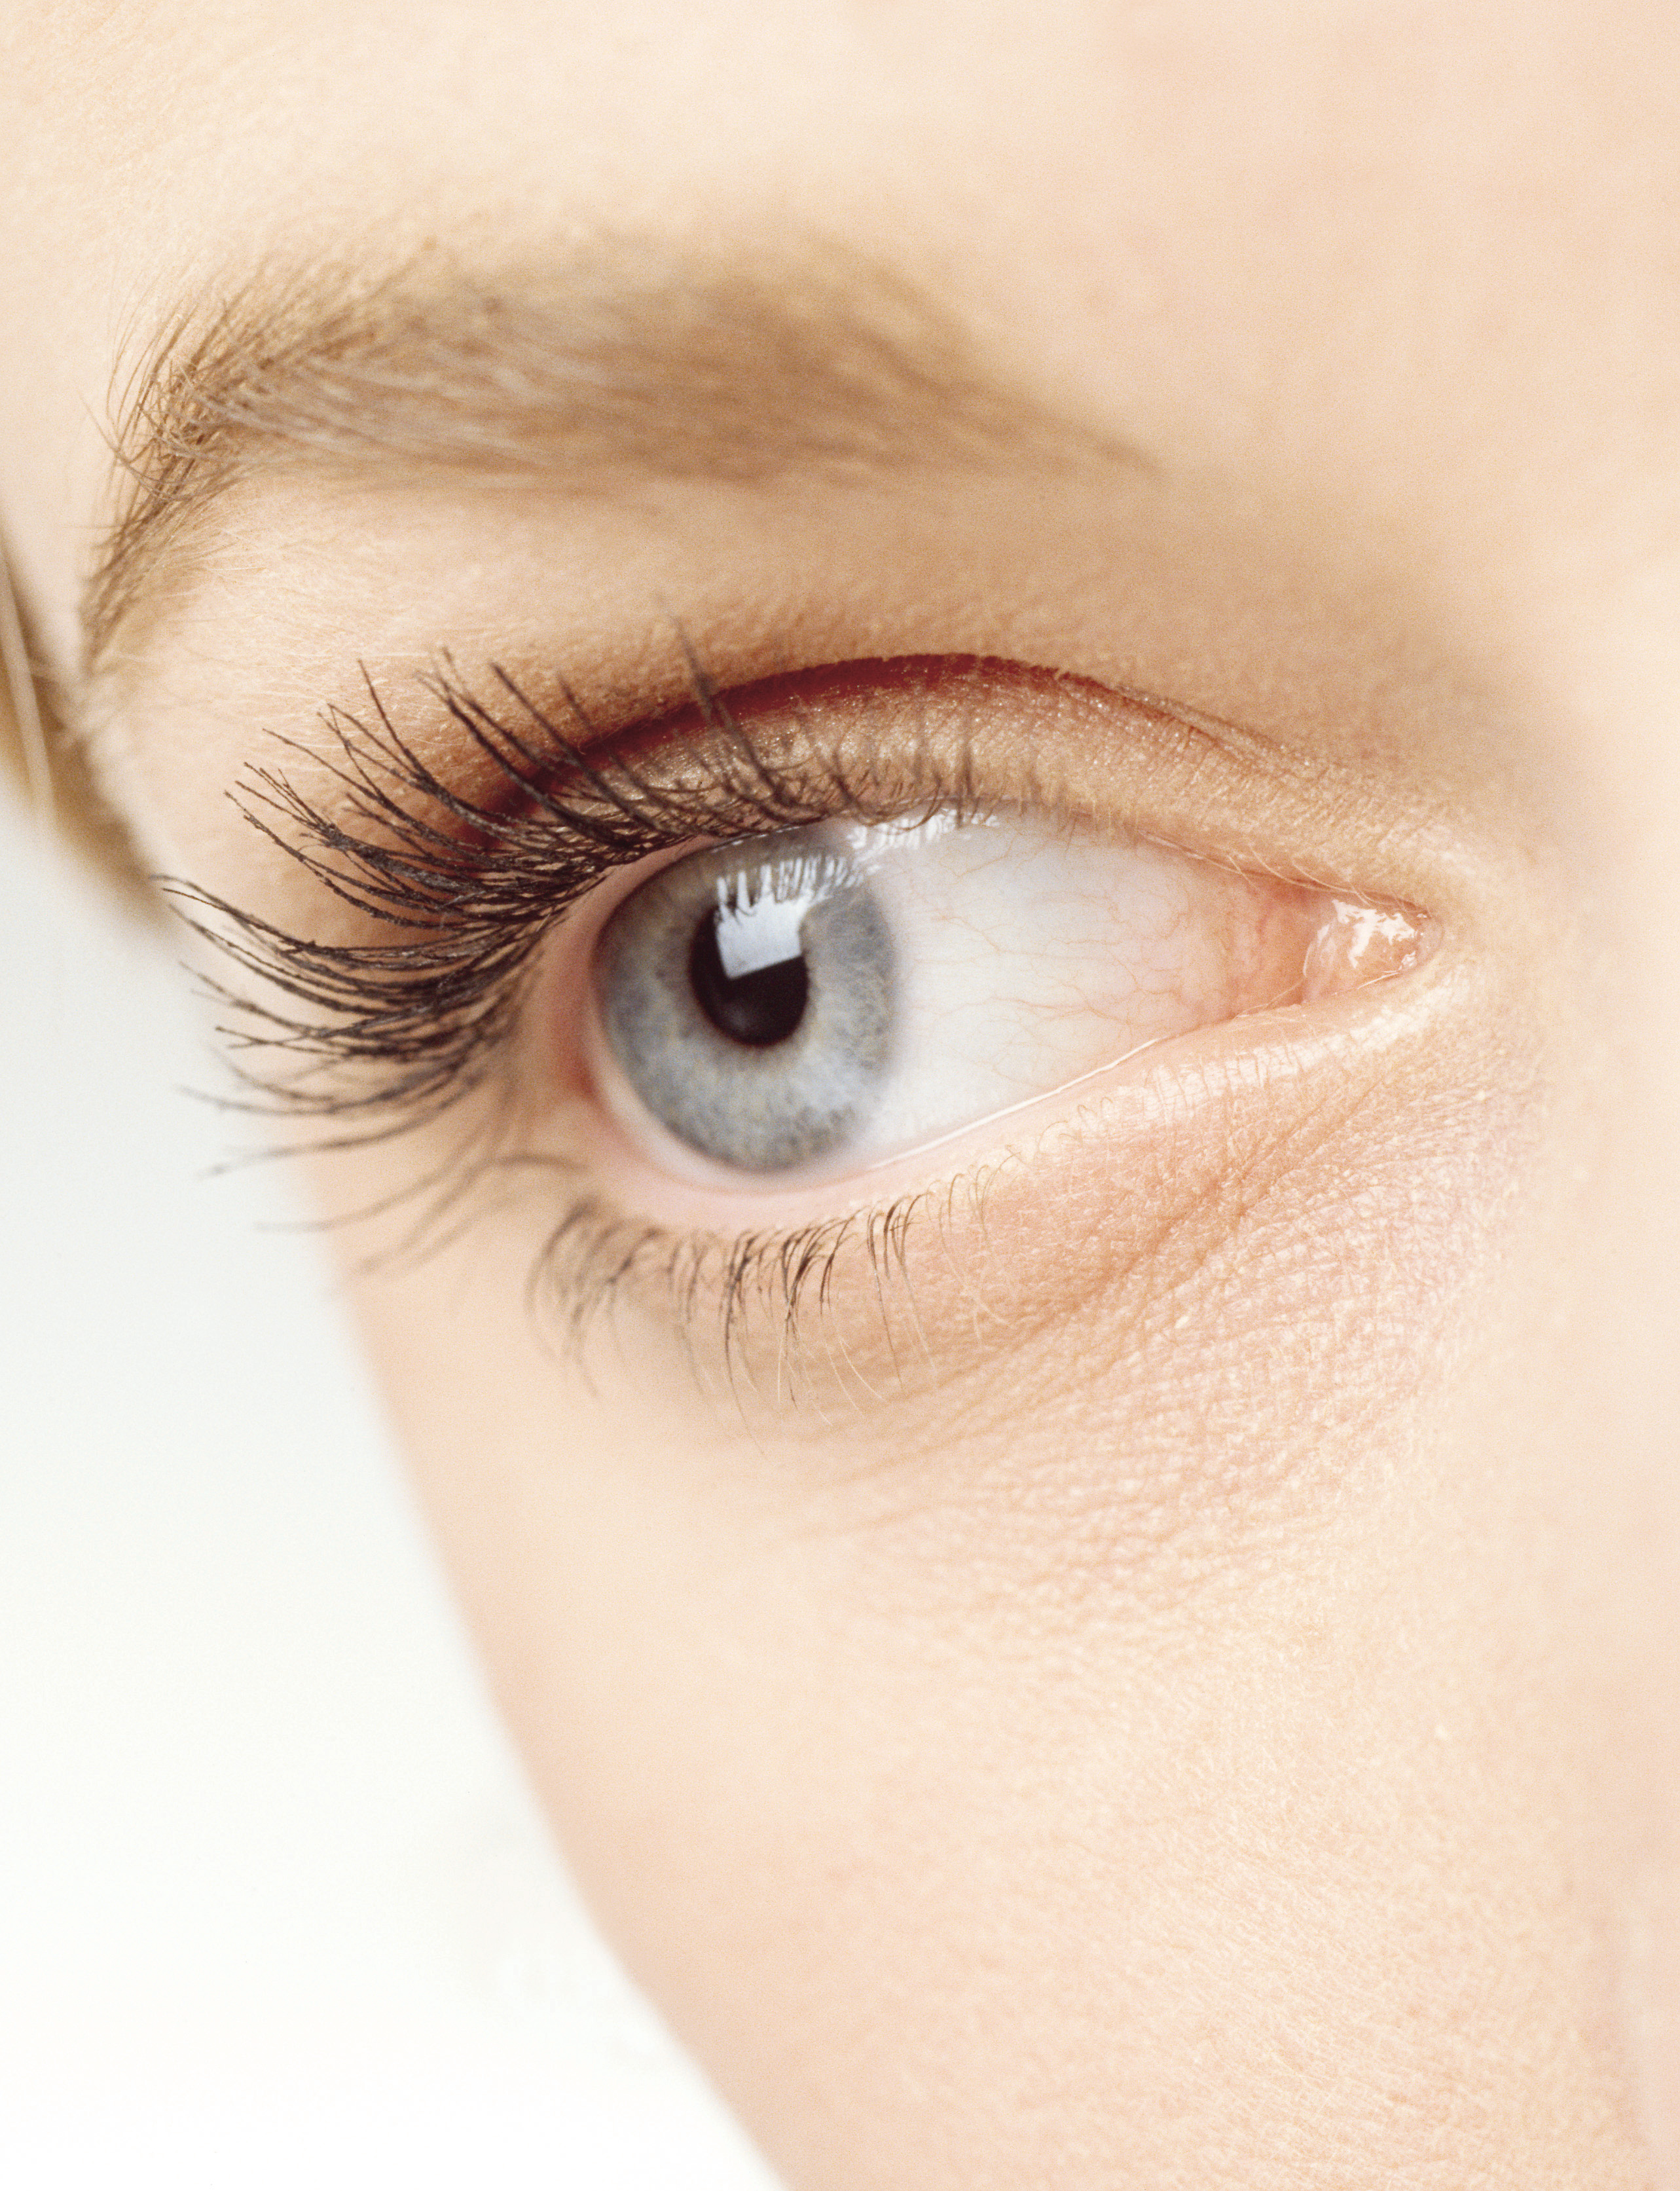 If you cut your eyelashes do they grow back